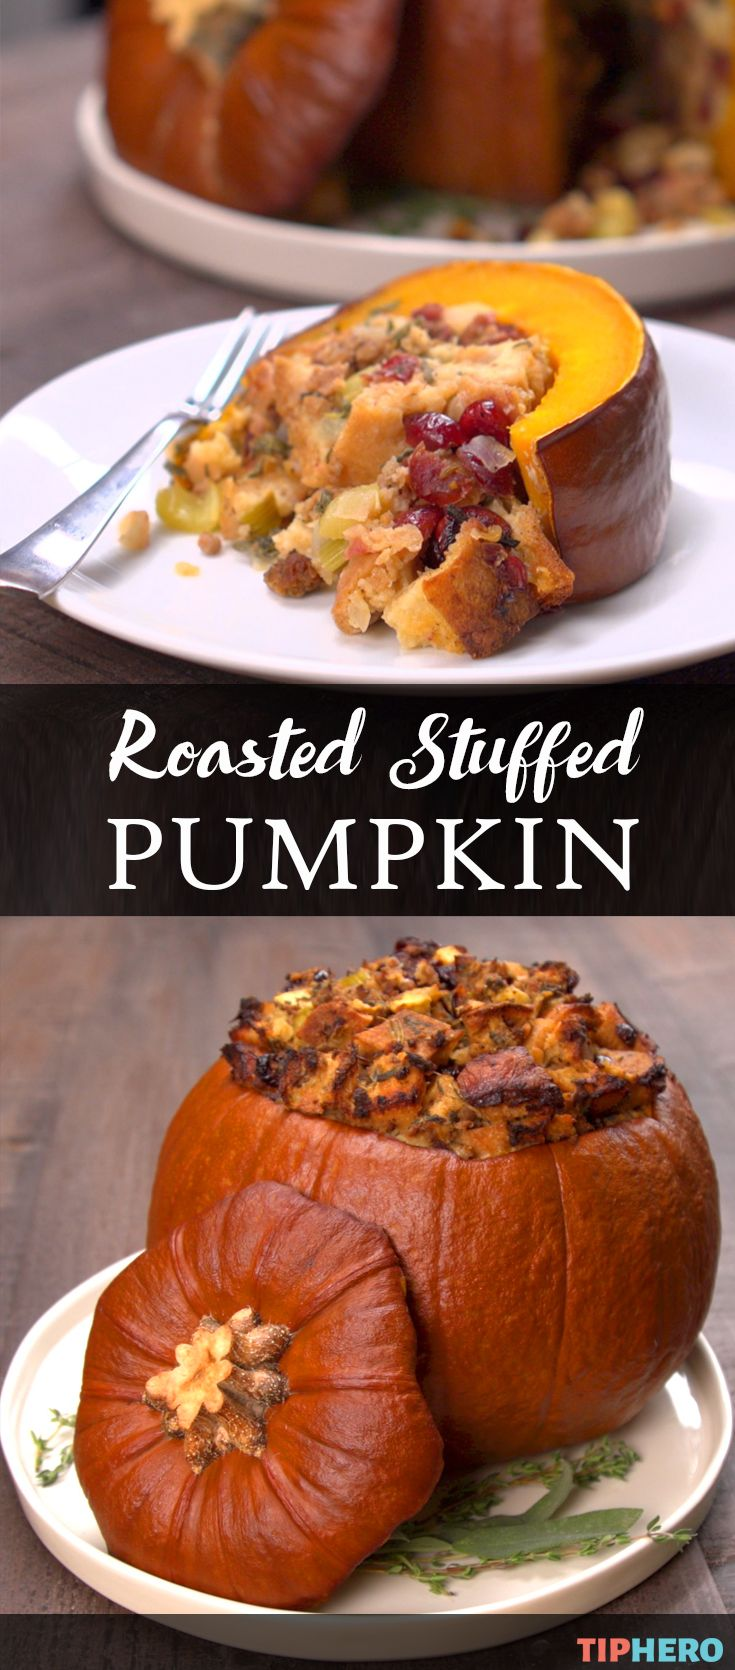 Ever tried cooking pumpkin? This Roasted Stuffed Pumpkin dish is the perfect Fall dish, whether for the big day - Thanksgiving! - or for any autumnal gathering. The pumpkin, filled with apples, sausage and cranberries, is decorative and delicious! Click for the recipe and how to video and enjoy!   #recipes #homecooking #holidays